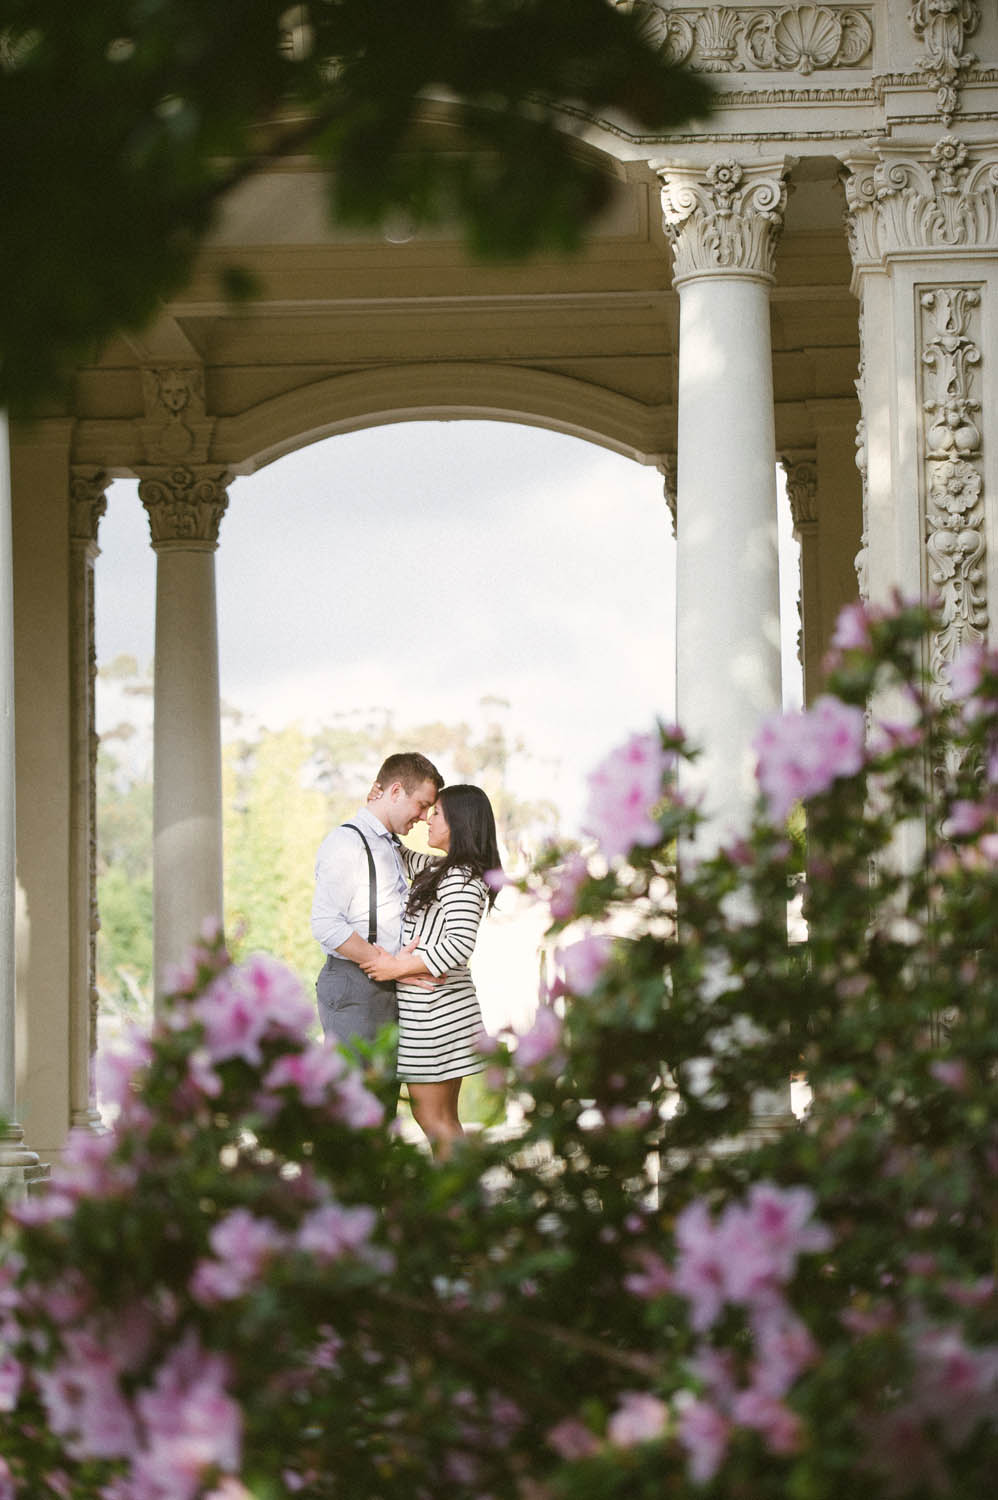 balboa-park-engagement-photos-ian-andrew-photography-048.jpg